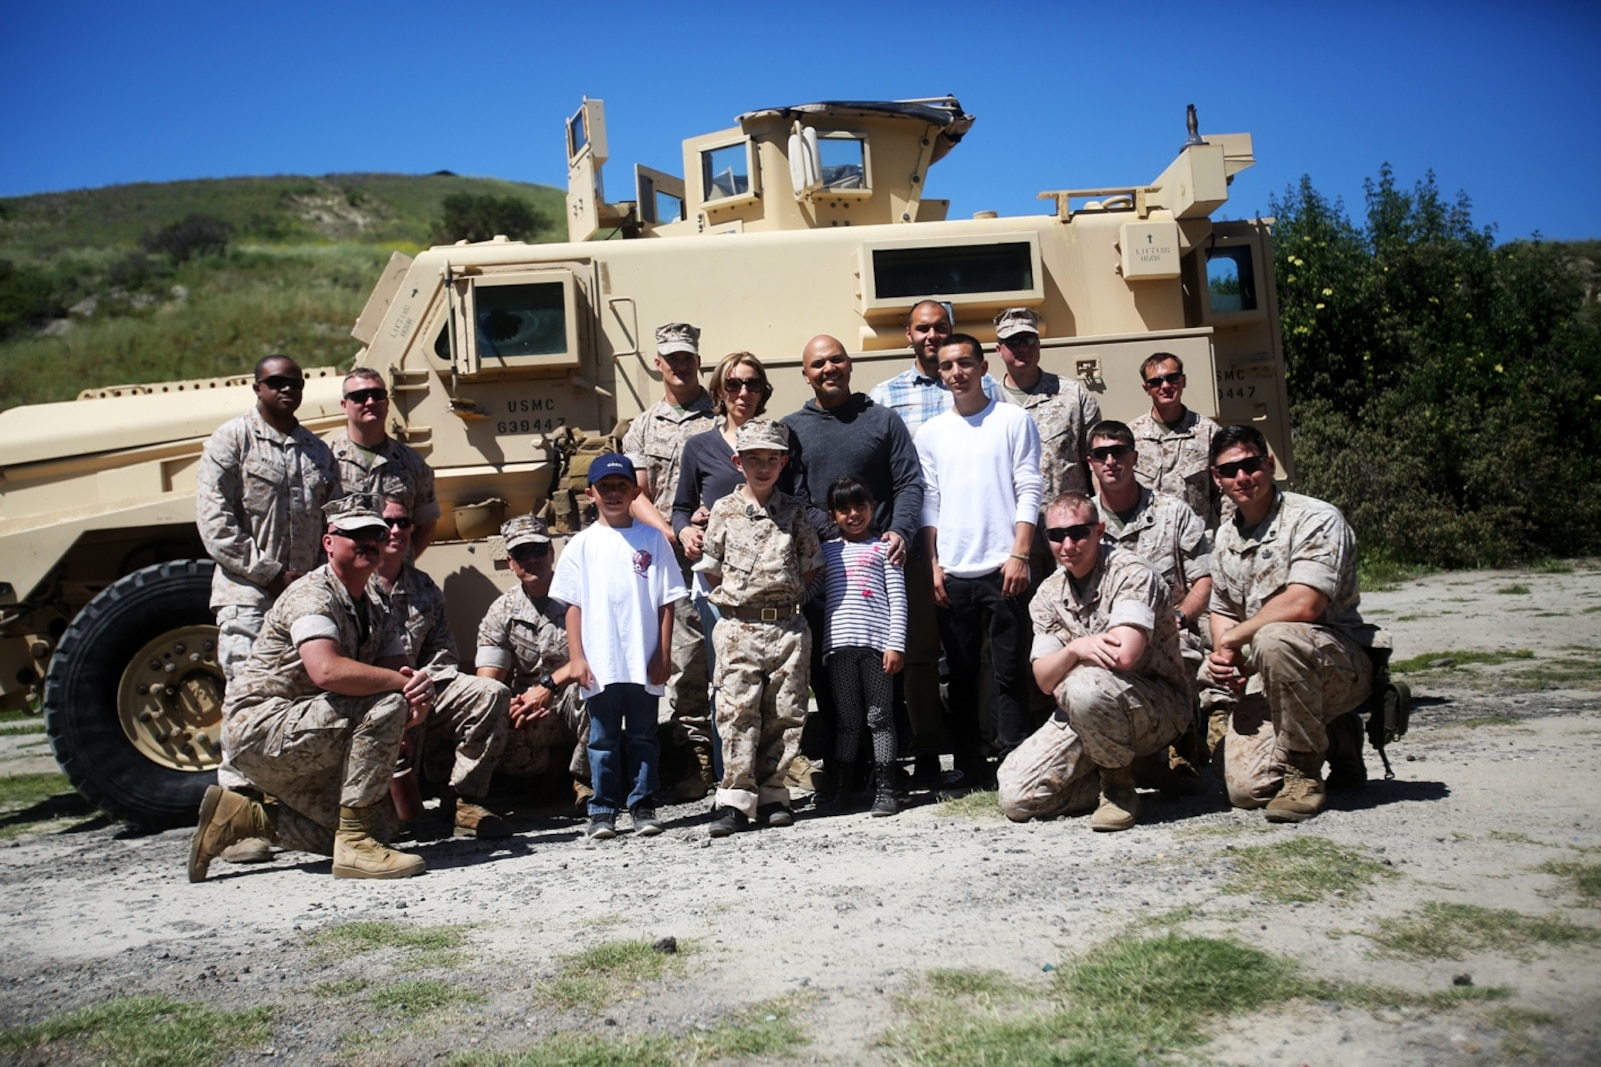 Nathan Aldaco, a 12 year-old boy with hypoplastic left heart syndrome, and his family, pose for a picture with Explosive Ordnance Disposal Marines during a Make-A-Wish event supported by 7th Engineer Support Battalion, 1st Marine Logistics Group, aboard Camp Pendleton, Calif., March 24, 2016. Marines with 7th ESB and Explosive Ordnance Disposal helped to make Nathan's wish of becoming a Marine come true by demonstrating the capabilities of their EOD robots and detonating TNT, C4, dynamite and blasting caps, while the heavy equipment operators gave him the opportunity to ride the D7 dozer and the excavator, in which he dug a pit, built a berm, and broke several large tree trunks. (U.S. Marine Corps photo by Sgt. Laura Gauna/released)